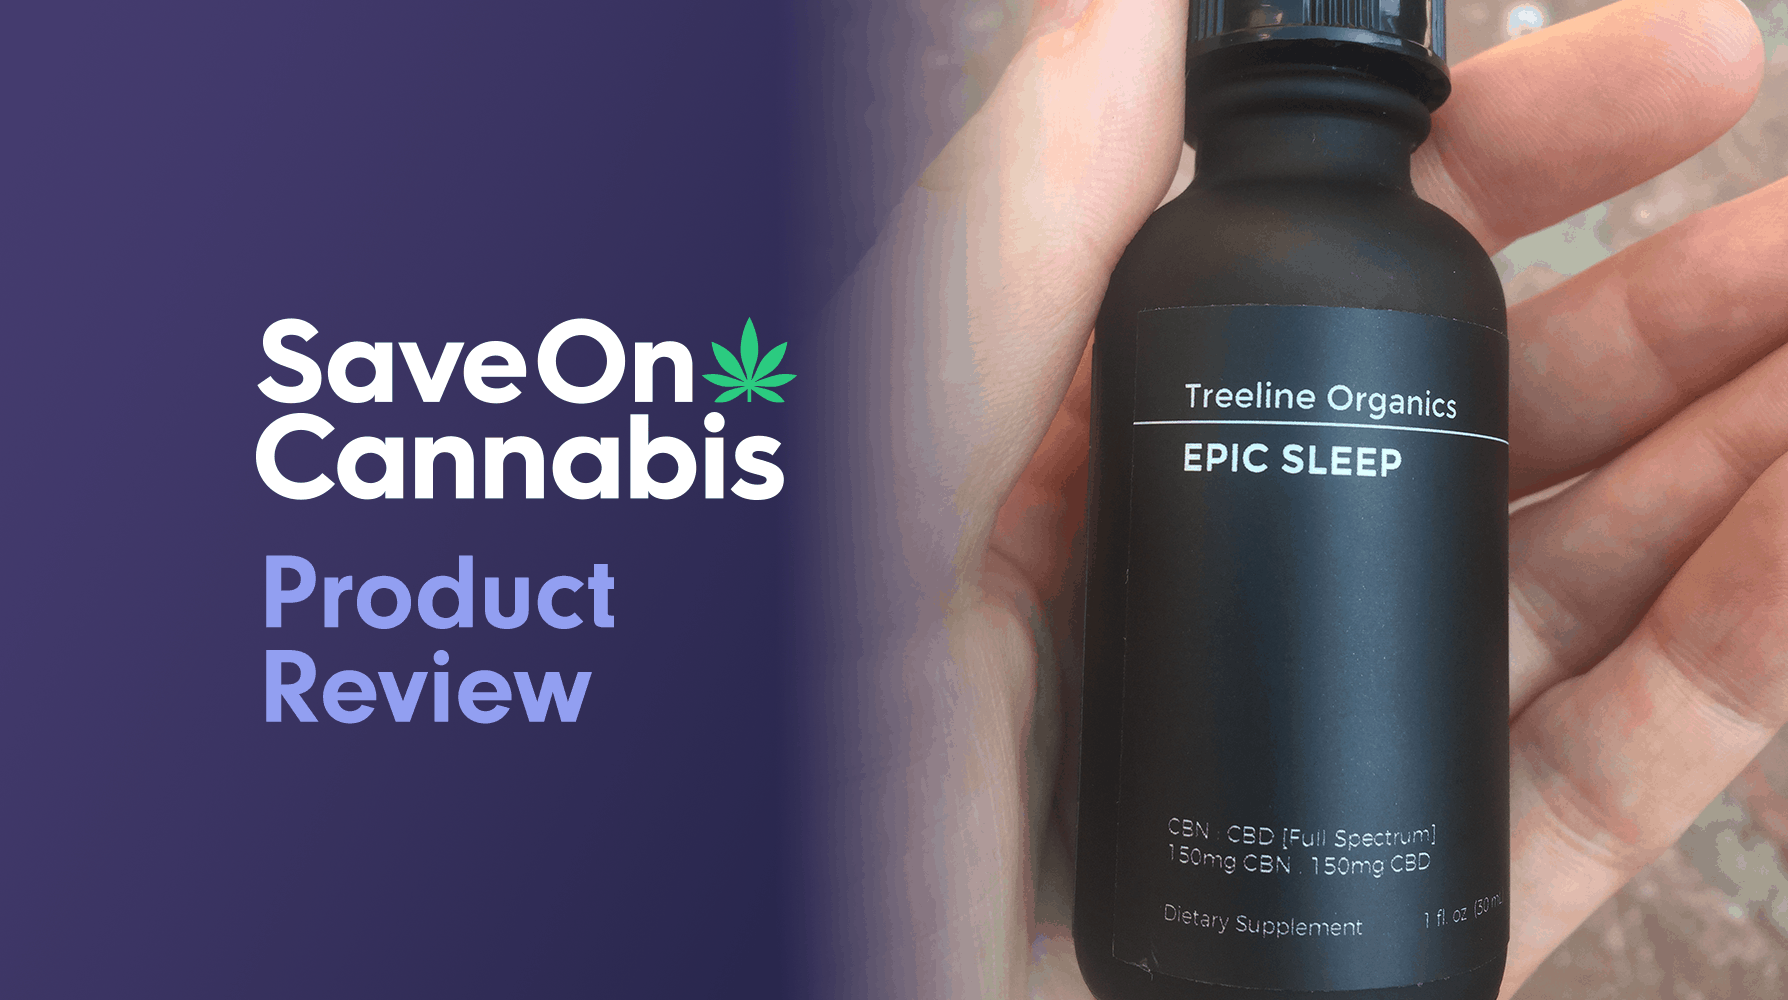 treeline epic sleep tincture review save on cannabis website